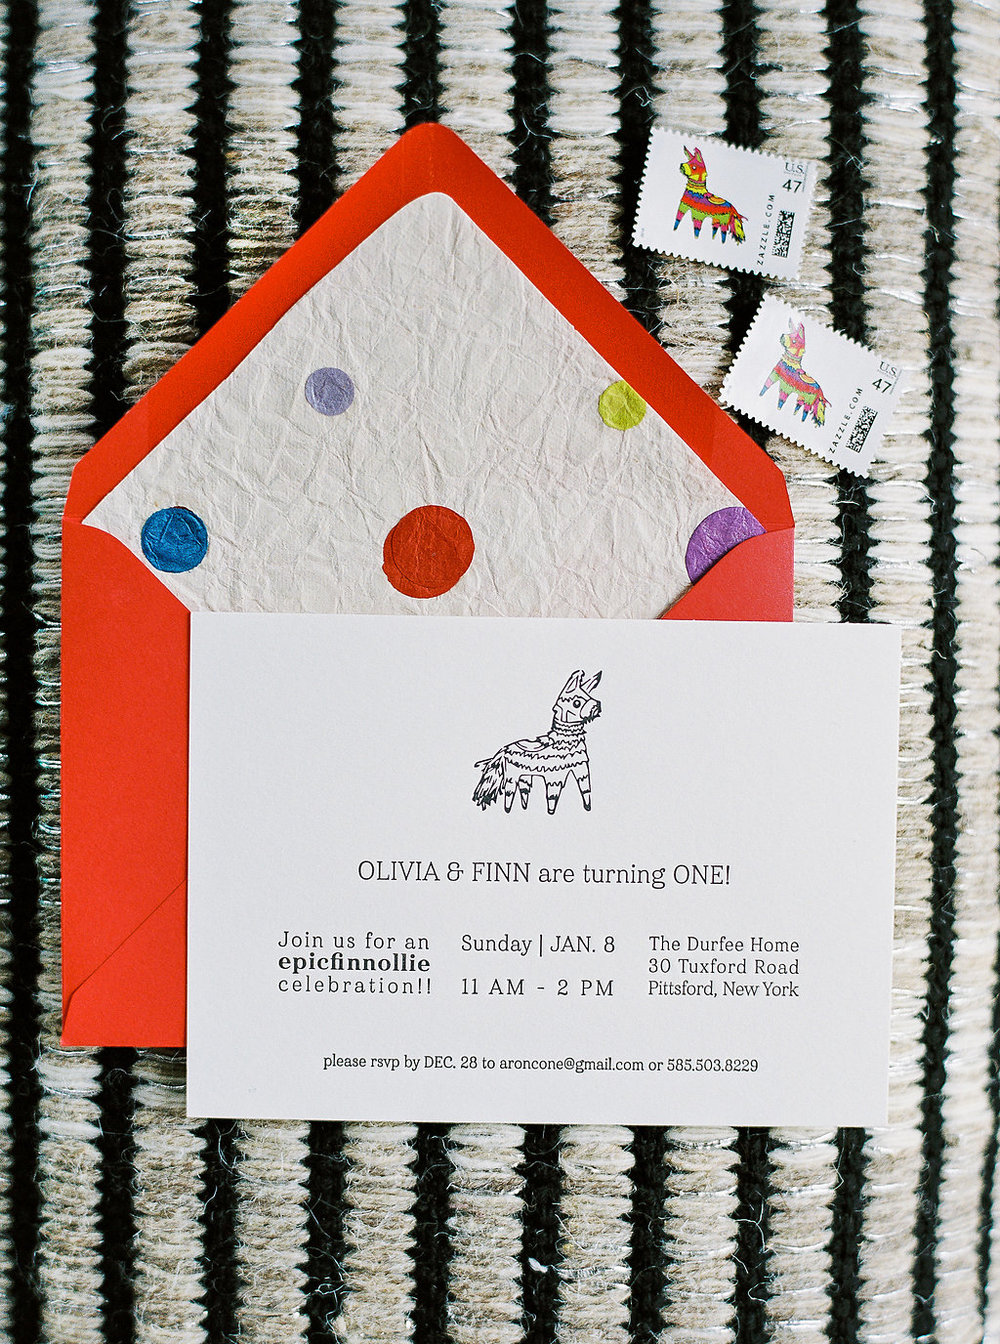 Alexandra-Elise-Photography-Ali-Reed-Louelle-Design-Studio-Invitations-033.jpg